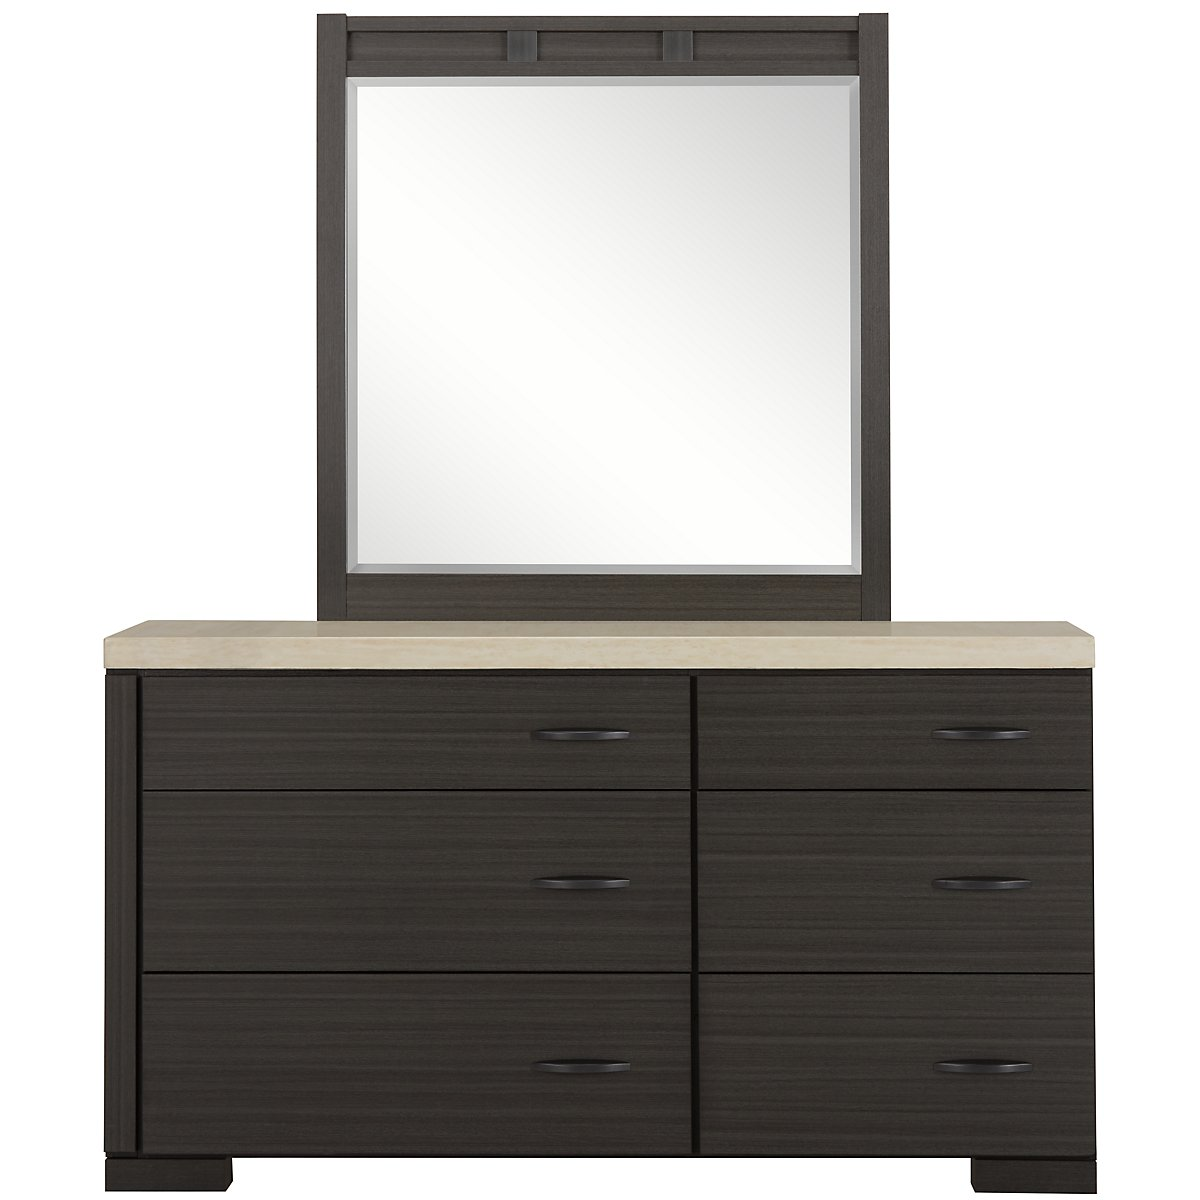 Mirrors For Bedroom Dressers City Furniture Bedroom Furniture Dressers Mirrors Chests